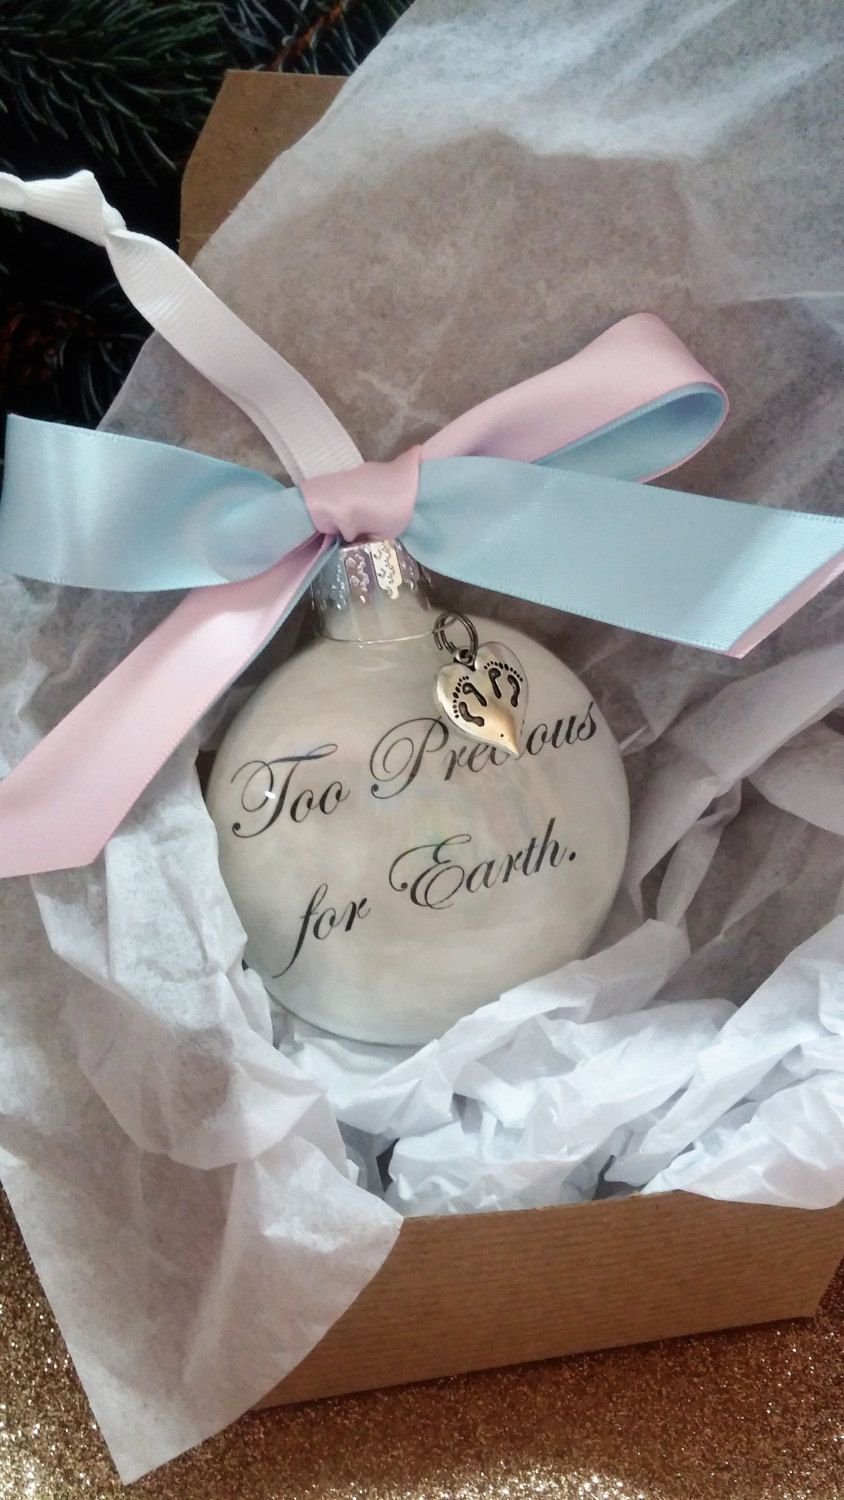 Ornaments for loved ones lost - Pregnancy Loss Memorial Ornament Too Precious For Earth Twin Babies Memorial Sympathy Gift Miscarriage Christmas Bauble Multiples